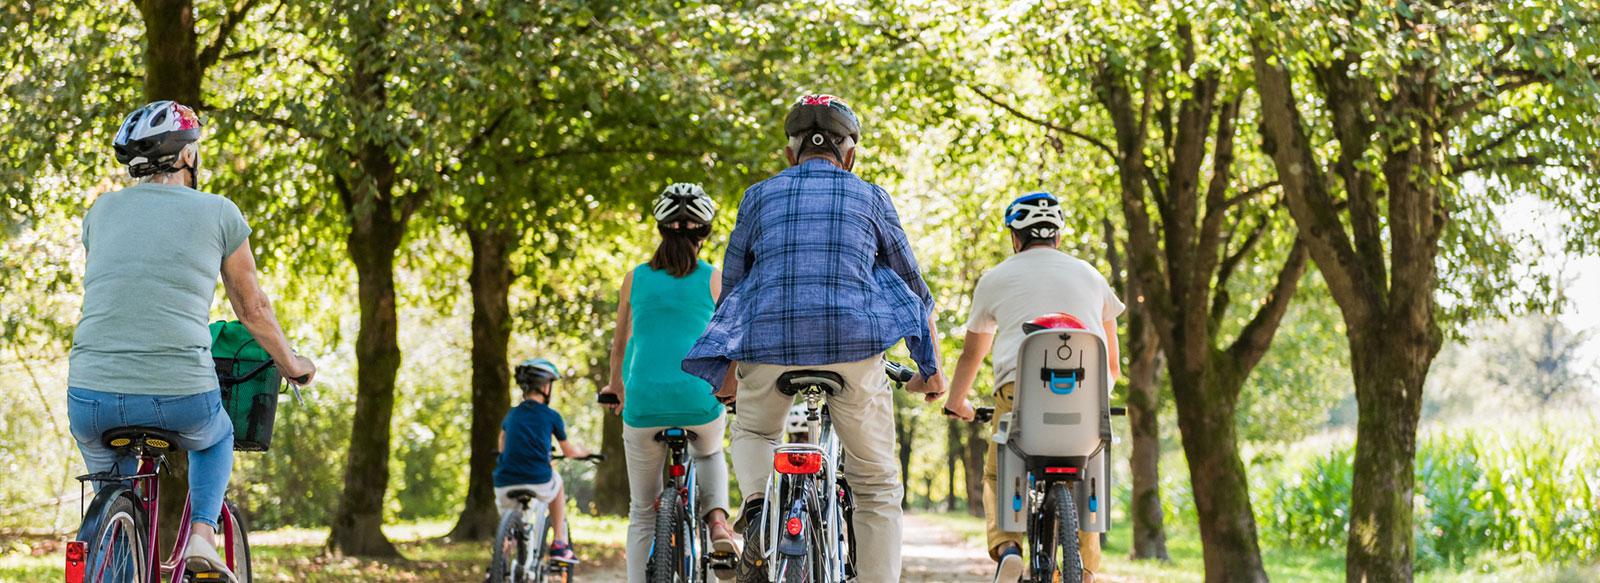 Parks, Recreation and Culture